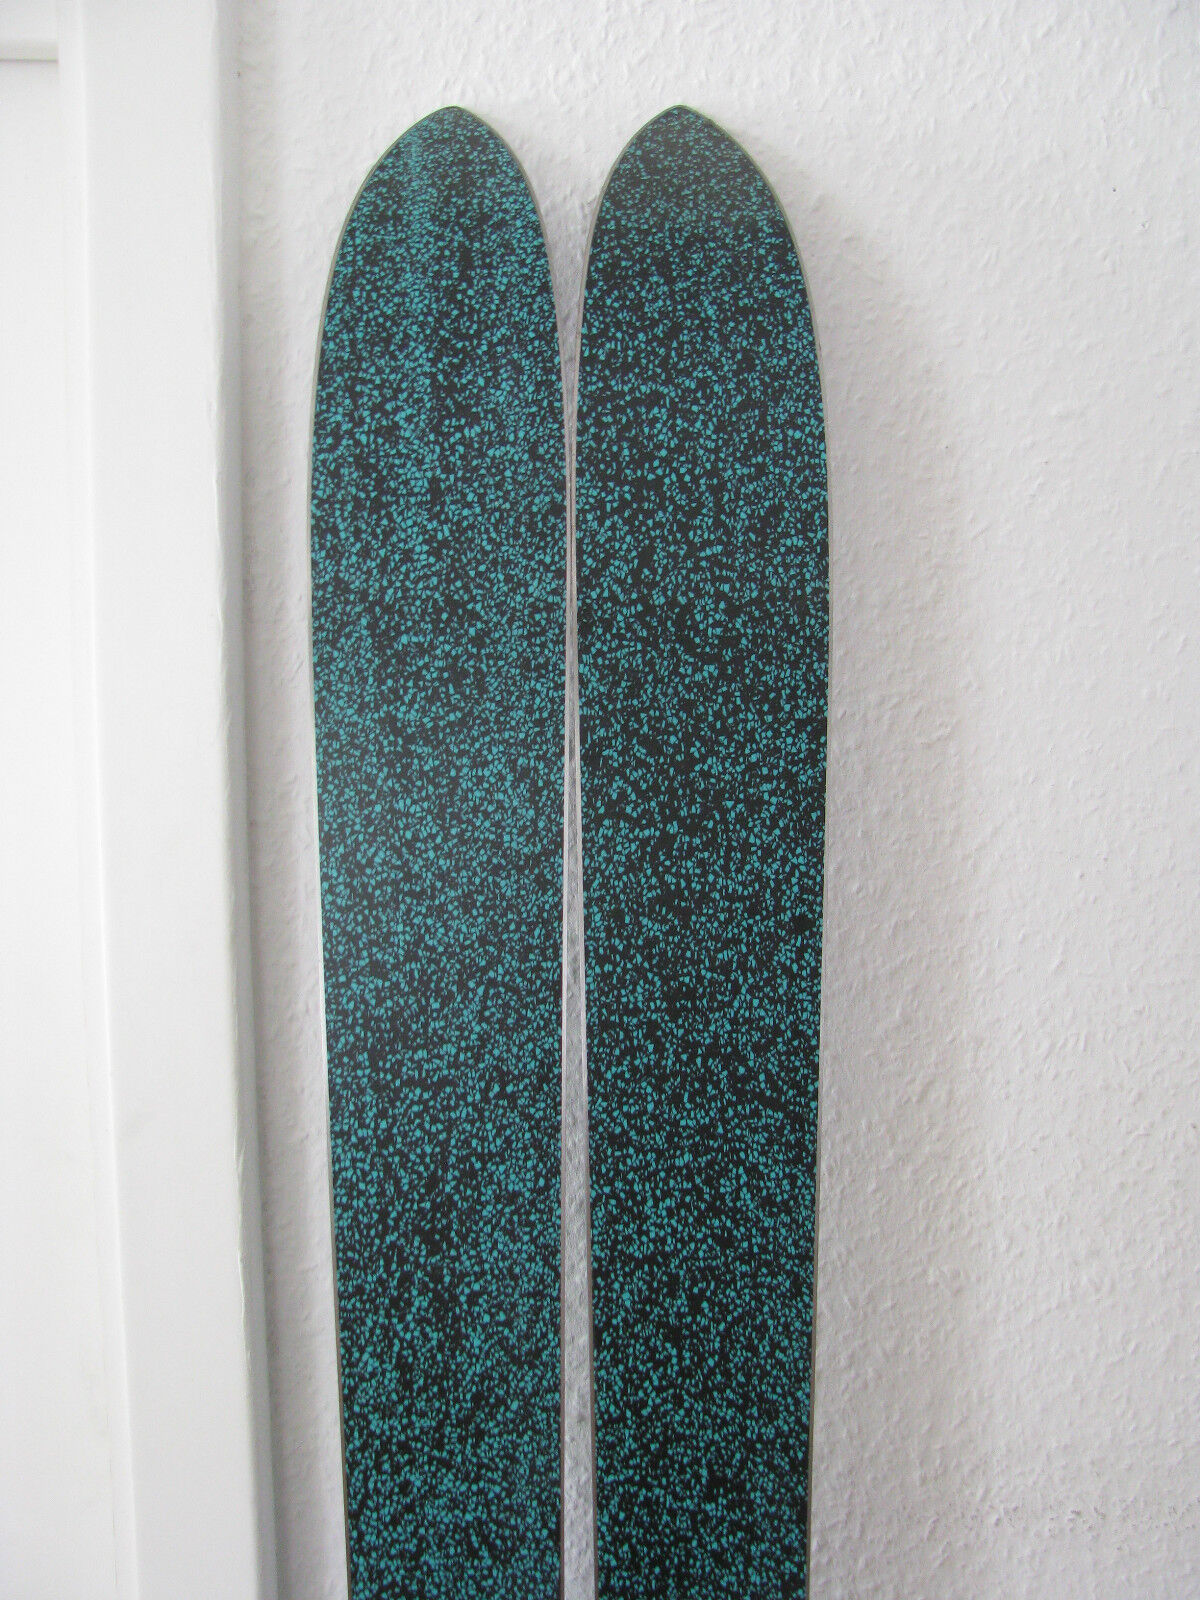 Grateful Dead Panther Dream Langlauf-Skier Limited Edition Edition Edition 187 cm lang NP d123a9